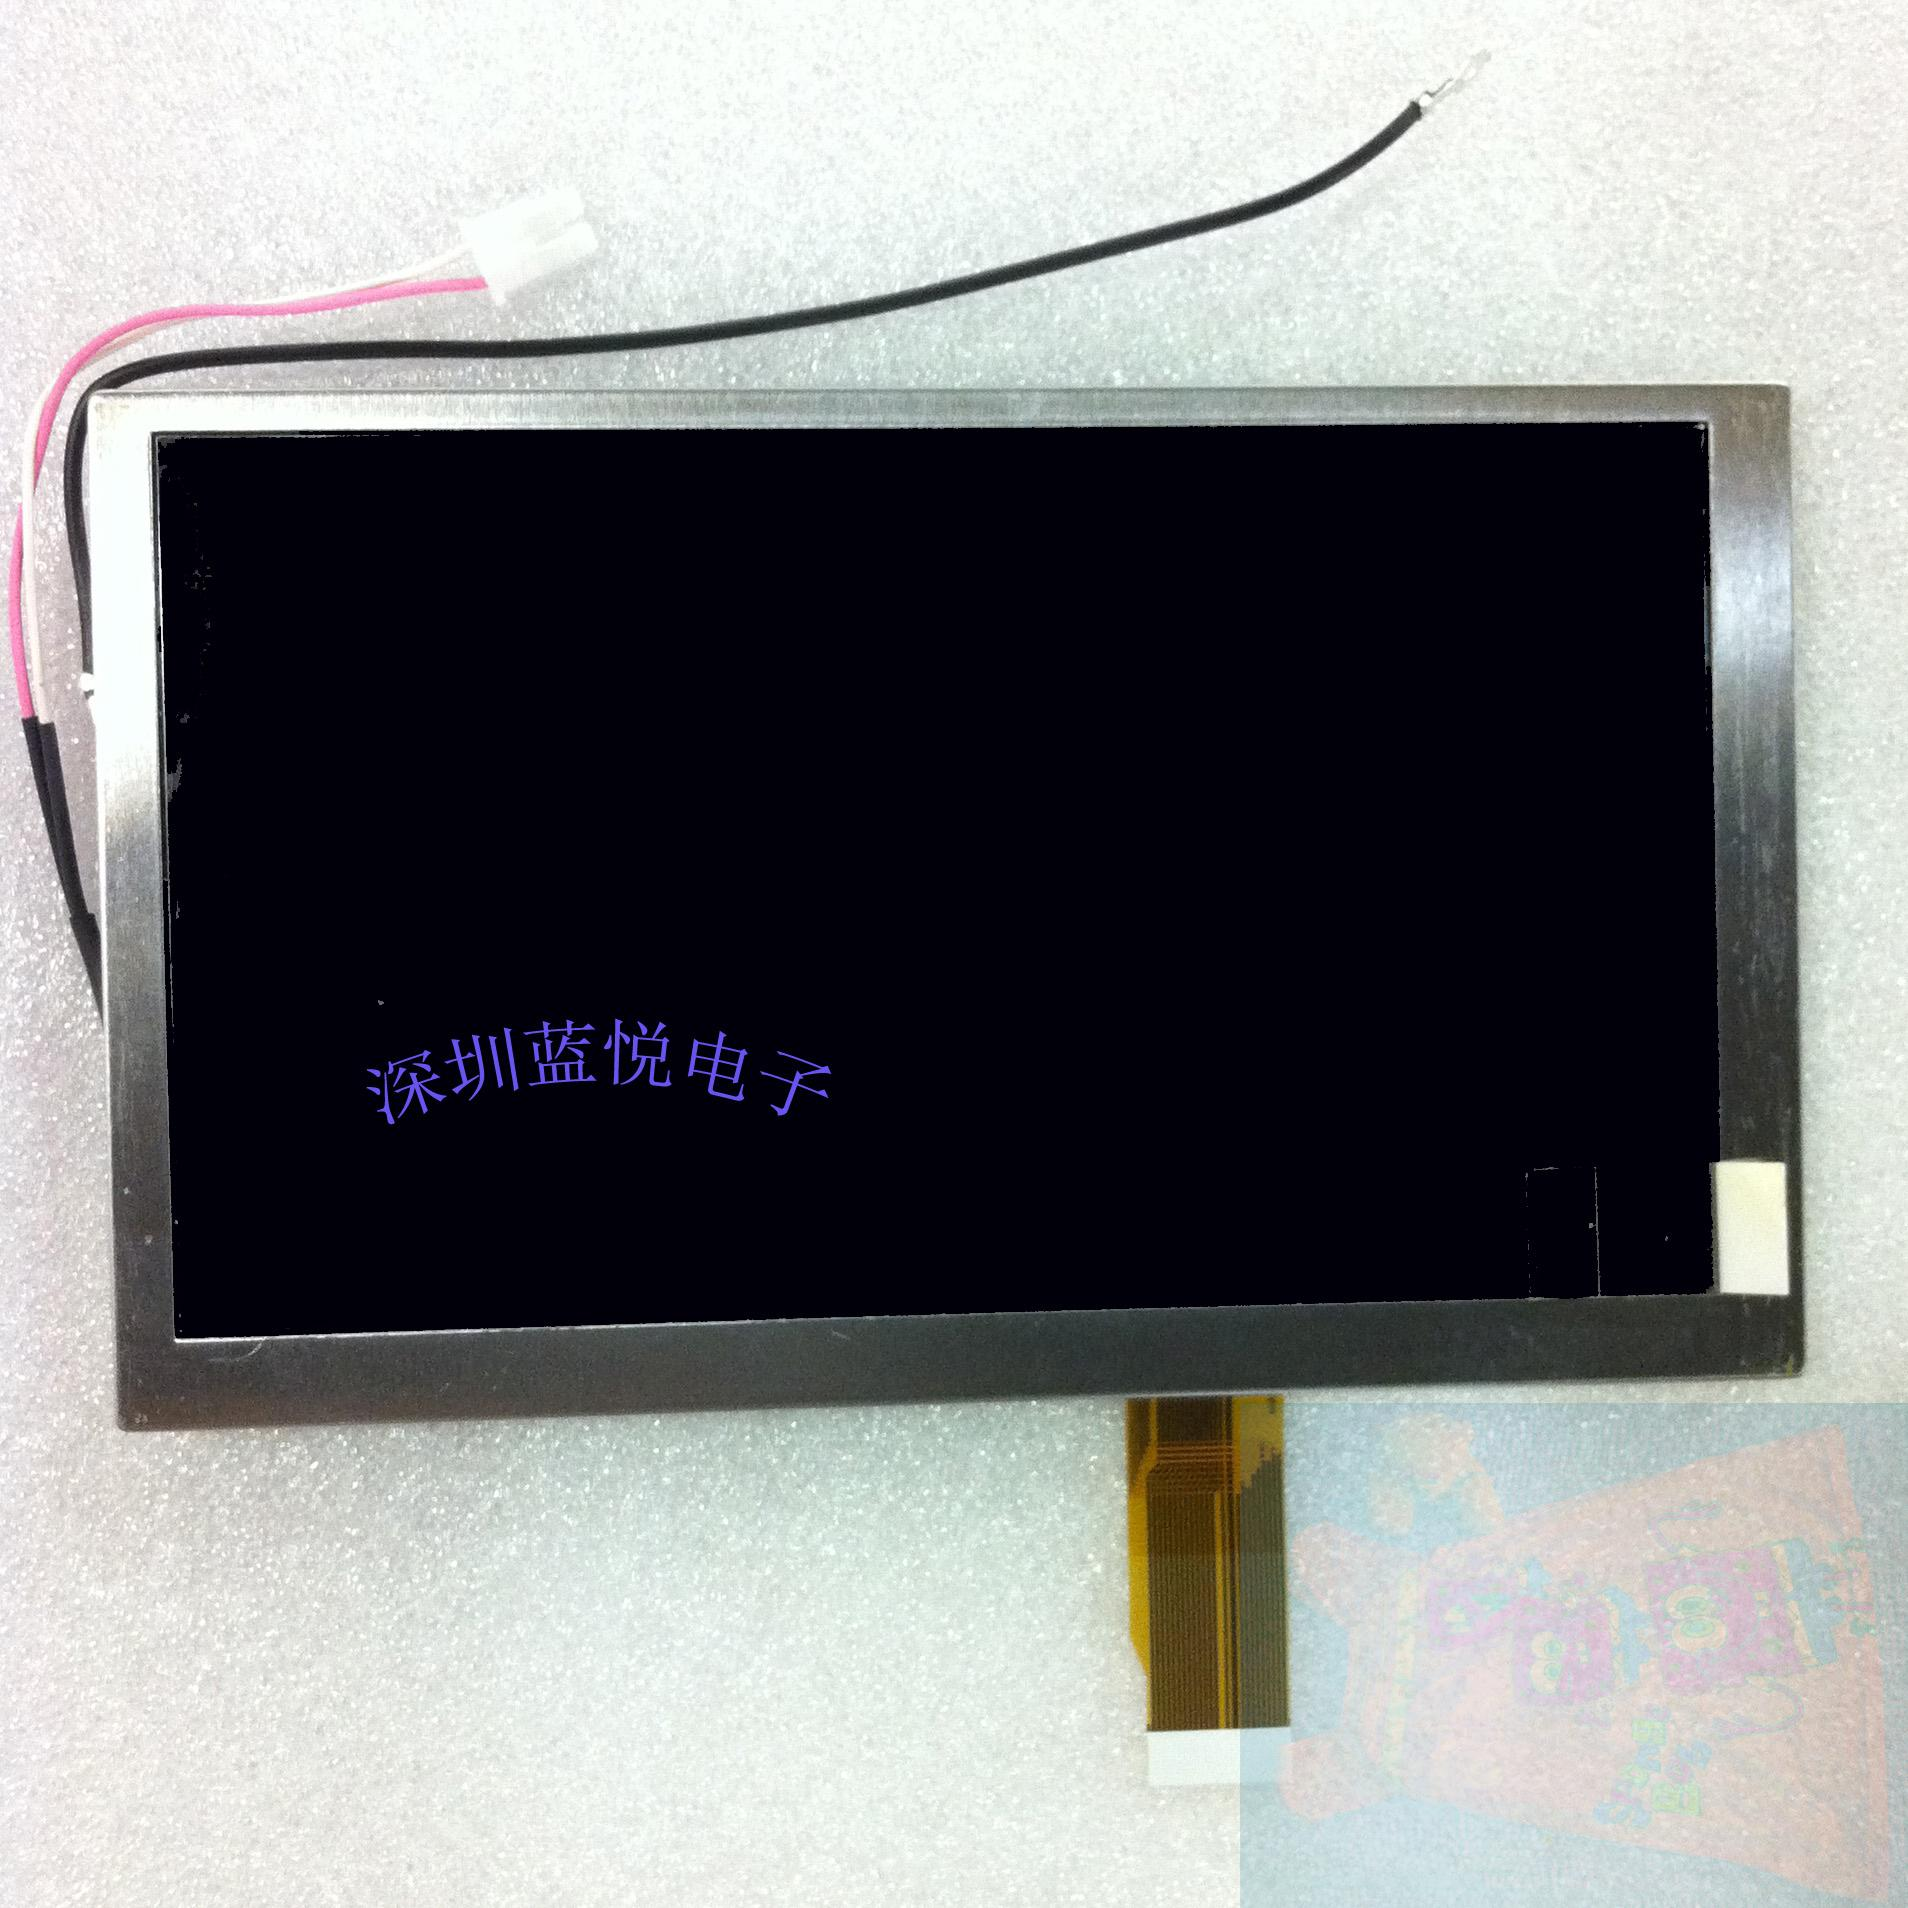 ZhiYuSun 6.2 PVI  LCD Screen pw062xs3 6.2  Screen Touch Screen  Free shipping<br>